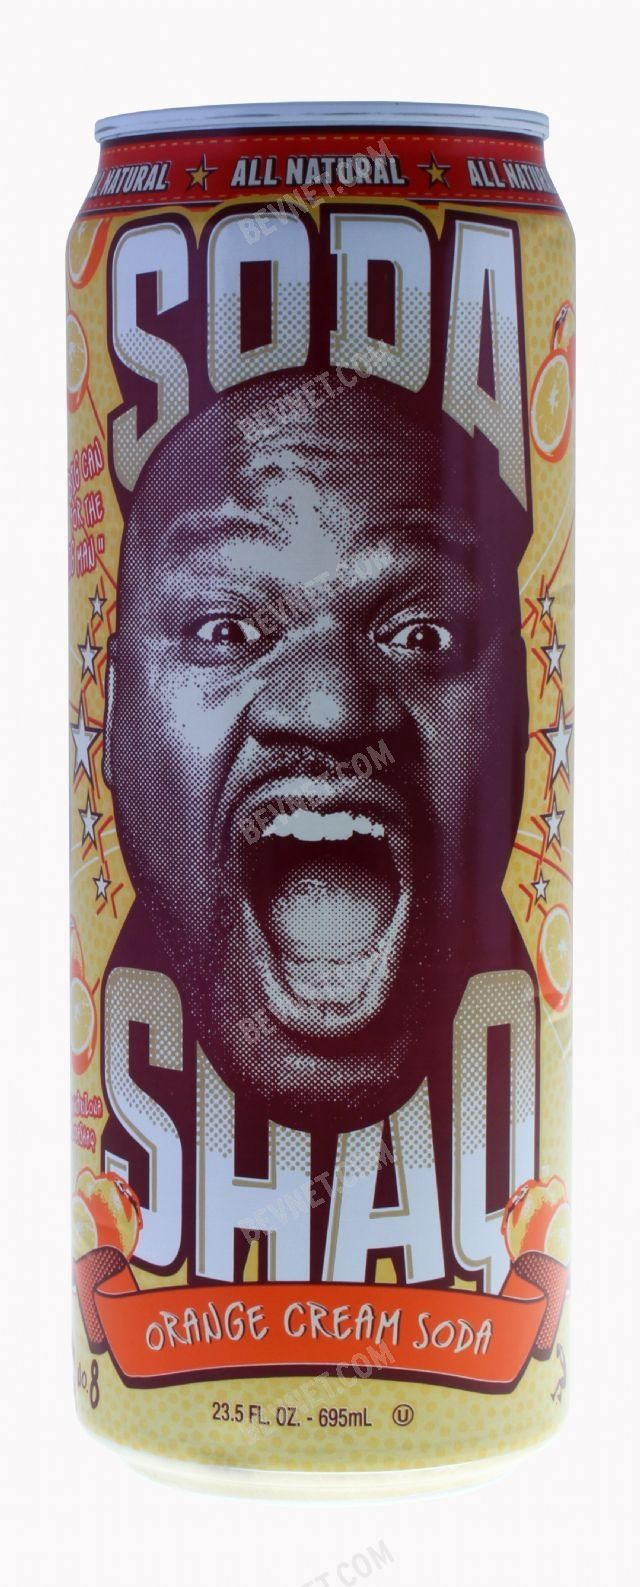 AriZona Soda Shaq: